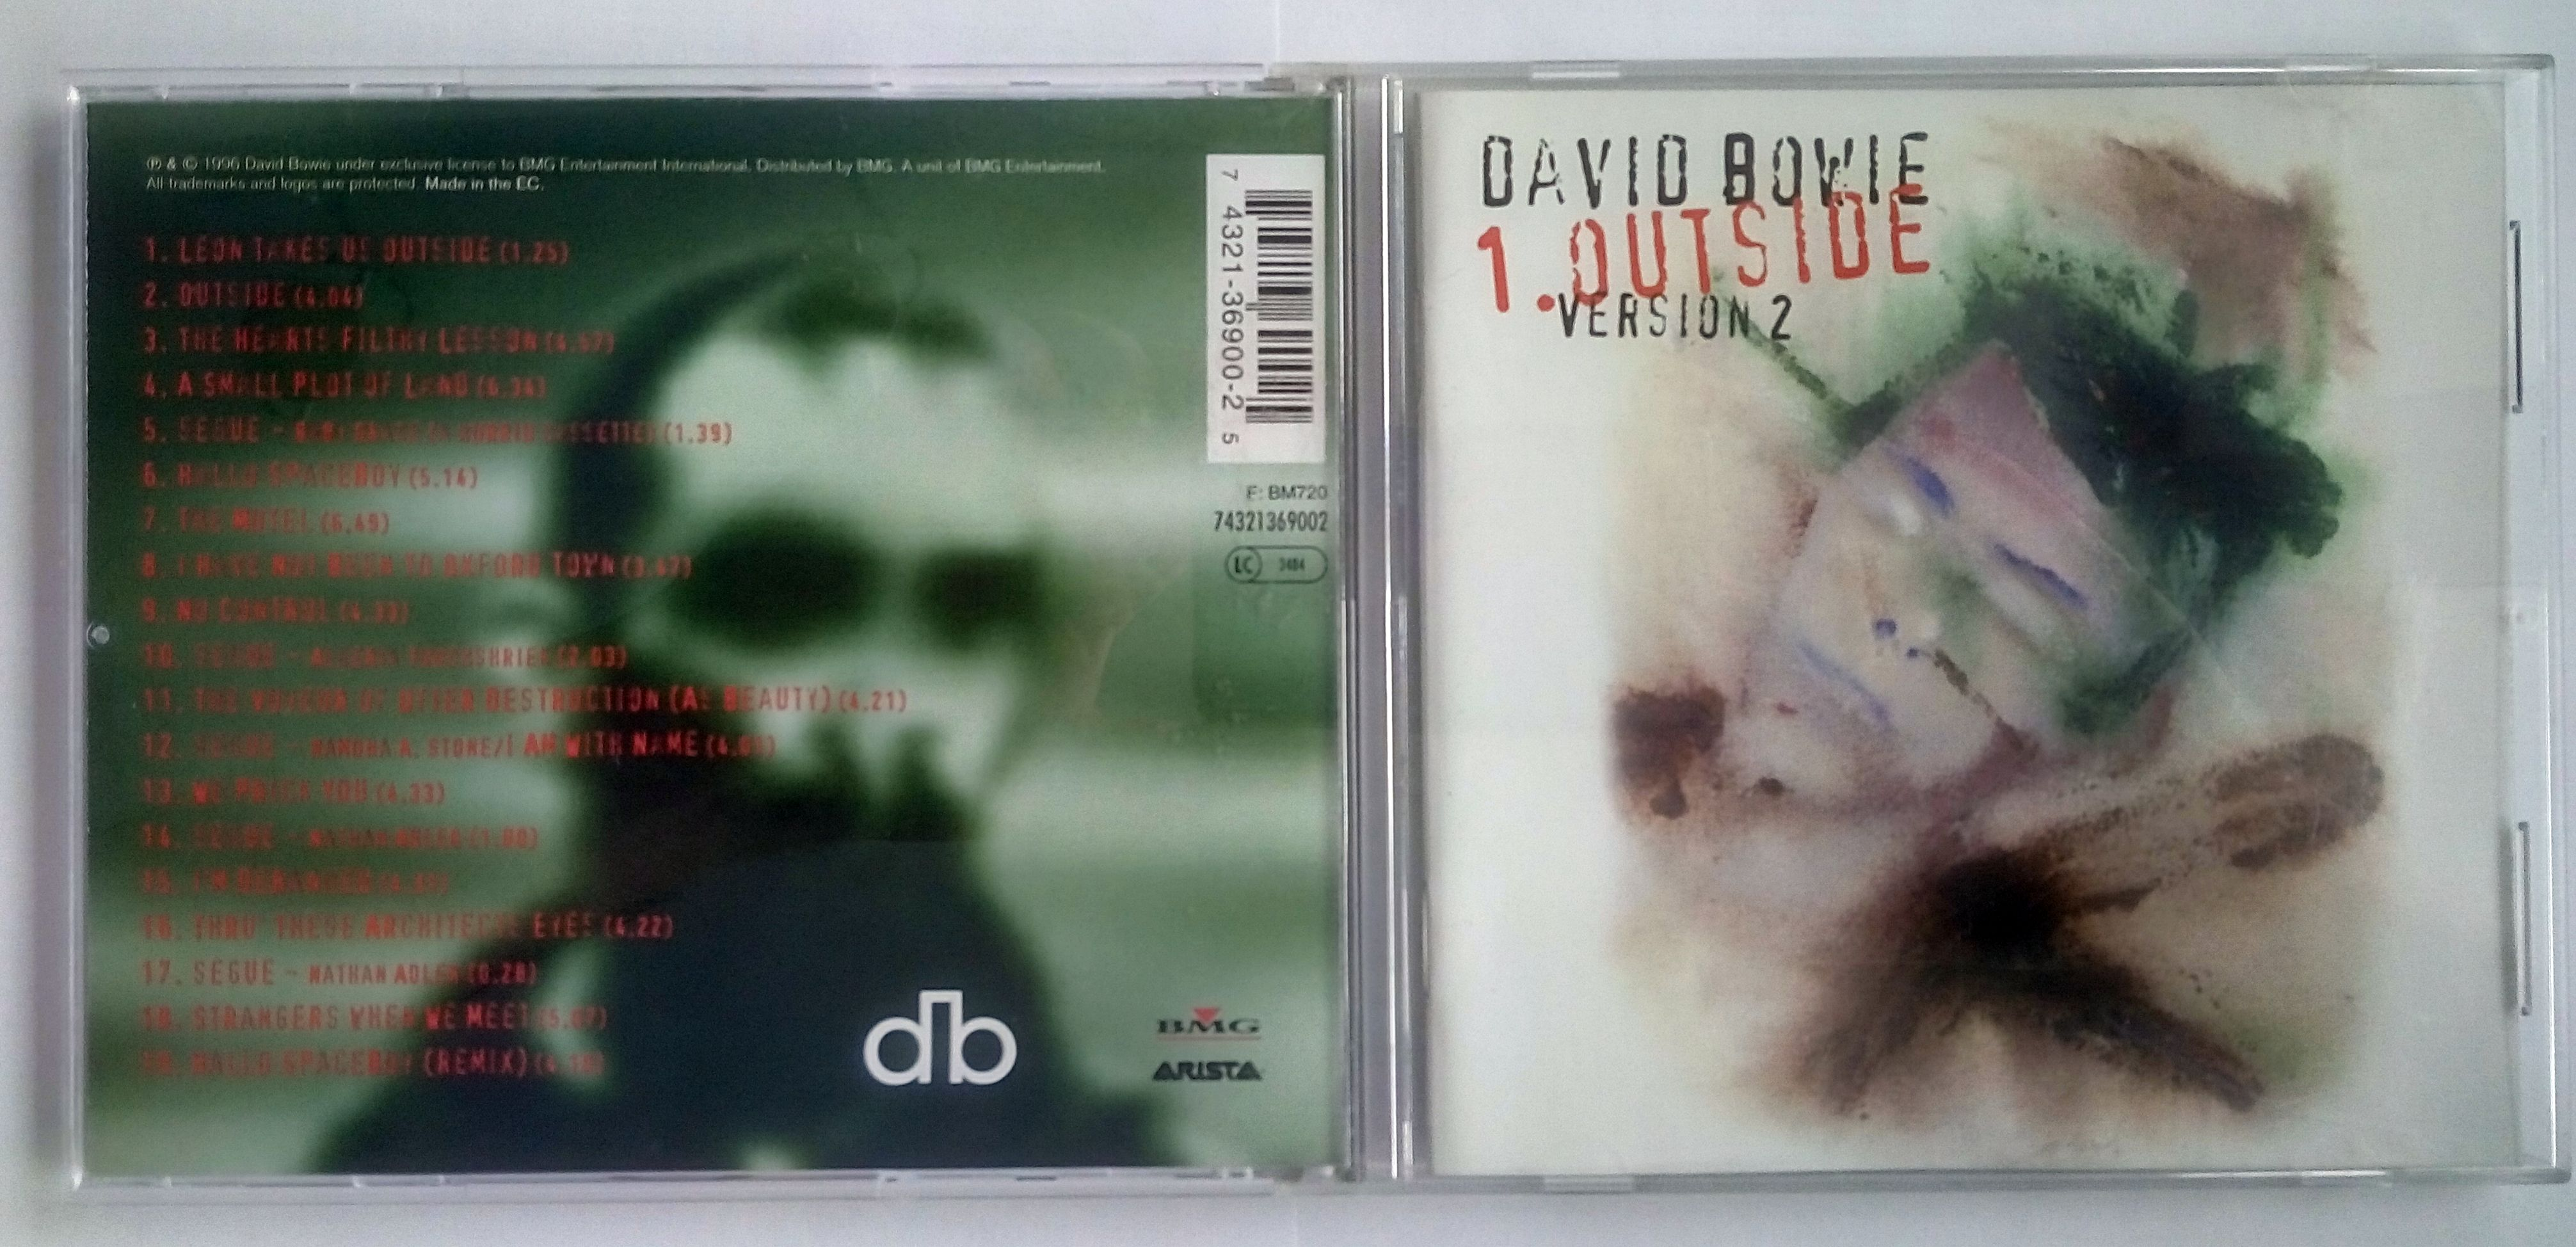 BOWIE, DAVID 1. Outside Version 2 (The Nathan Adler Diaries: A Hyper Cycle)